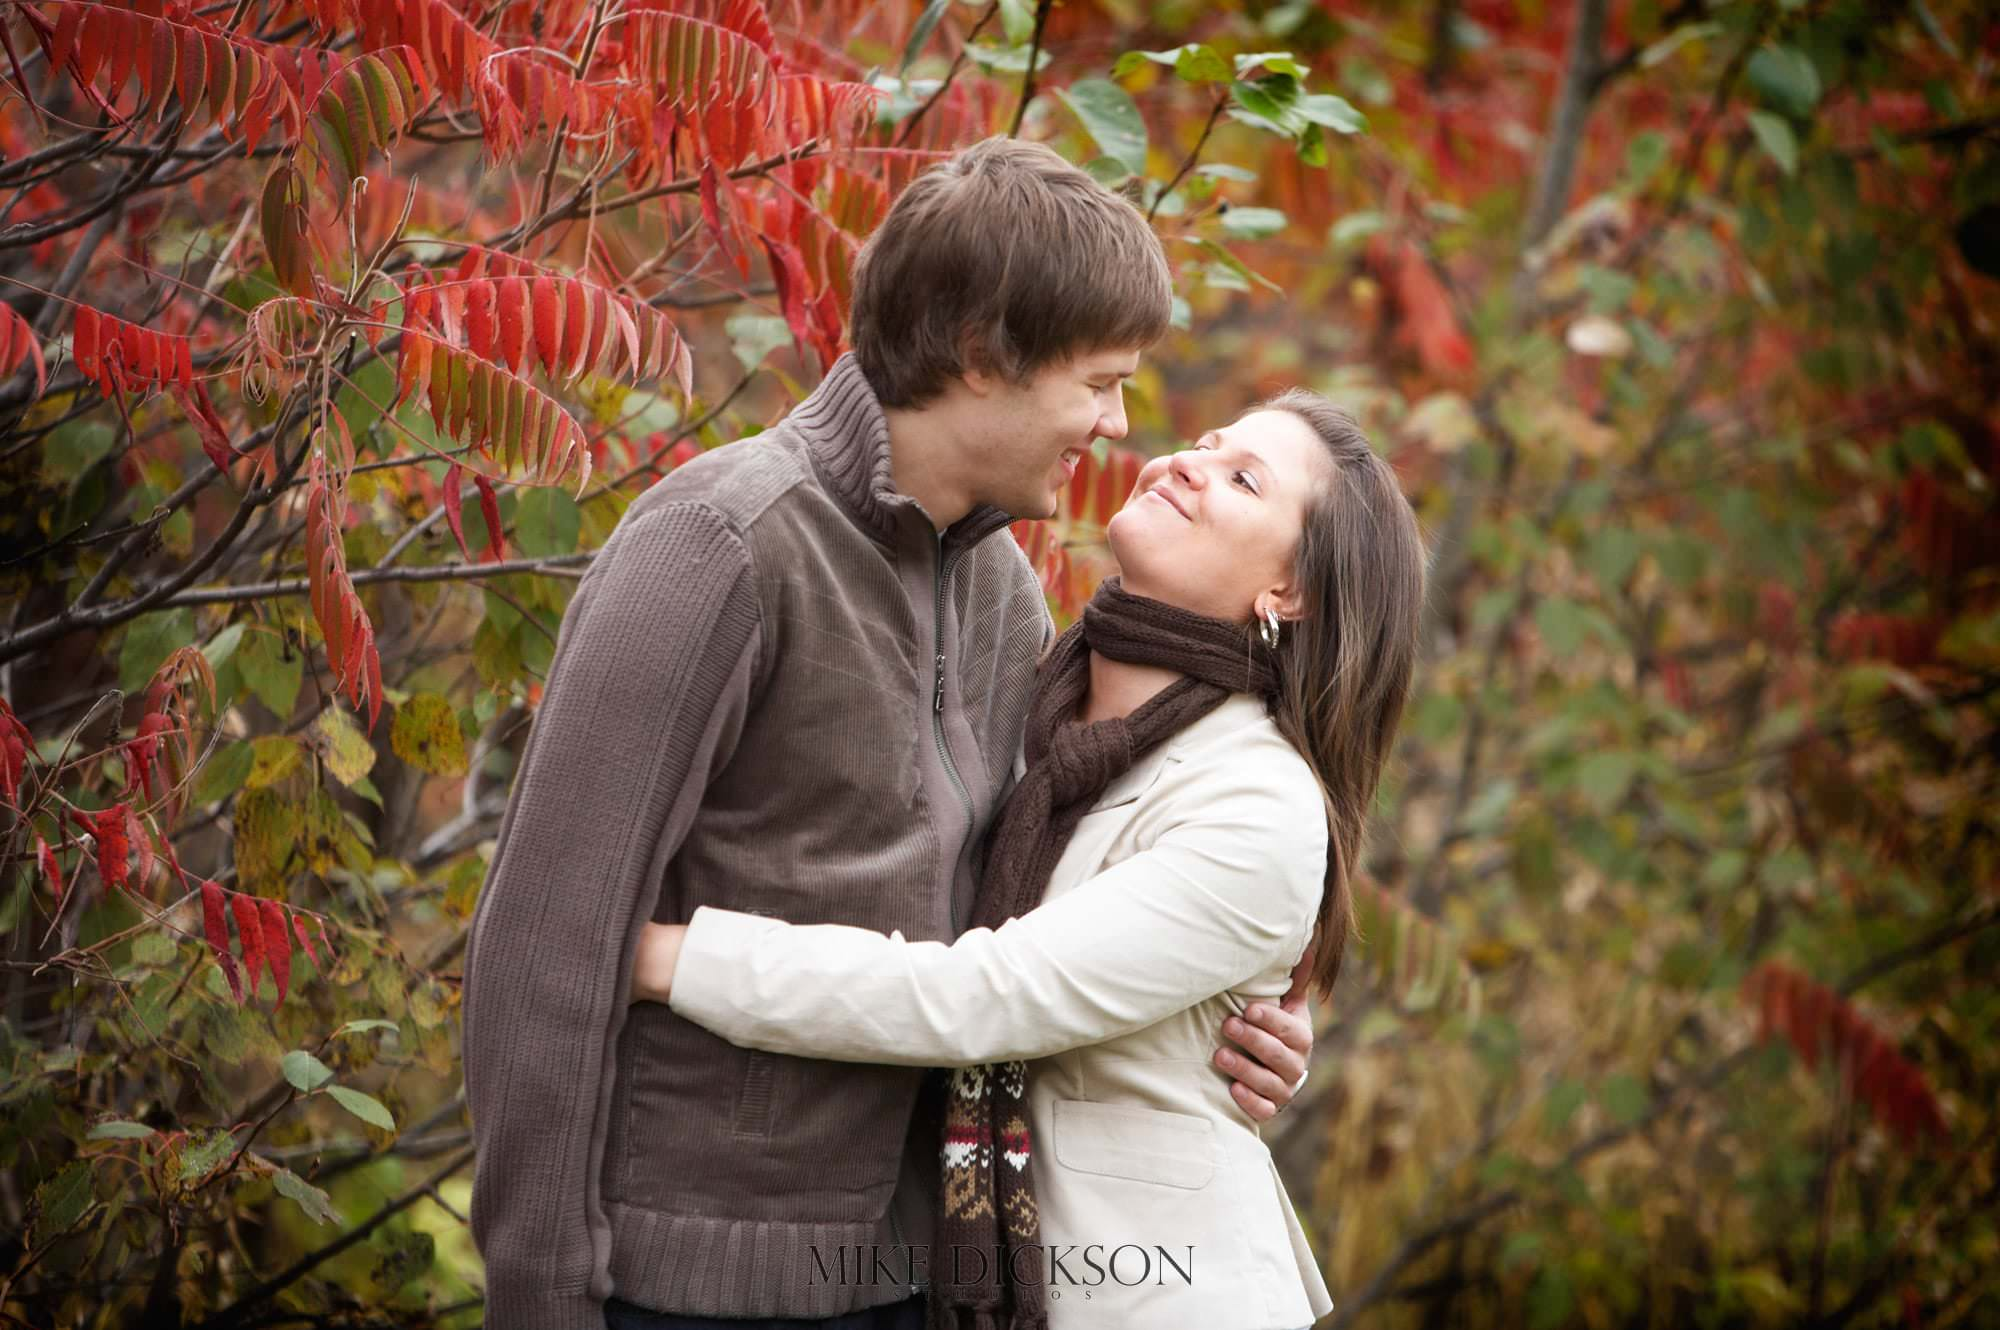 Arbouretum, Autumn, Engagement, Fall, Ontario, Ottawa, © Mike Dickson